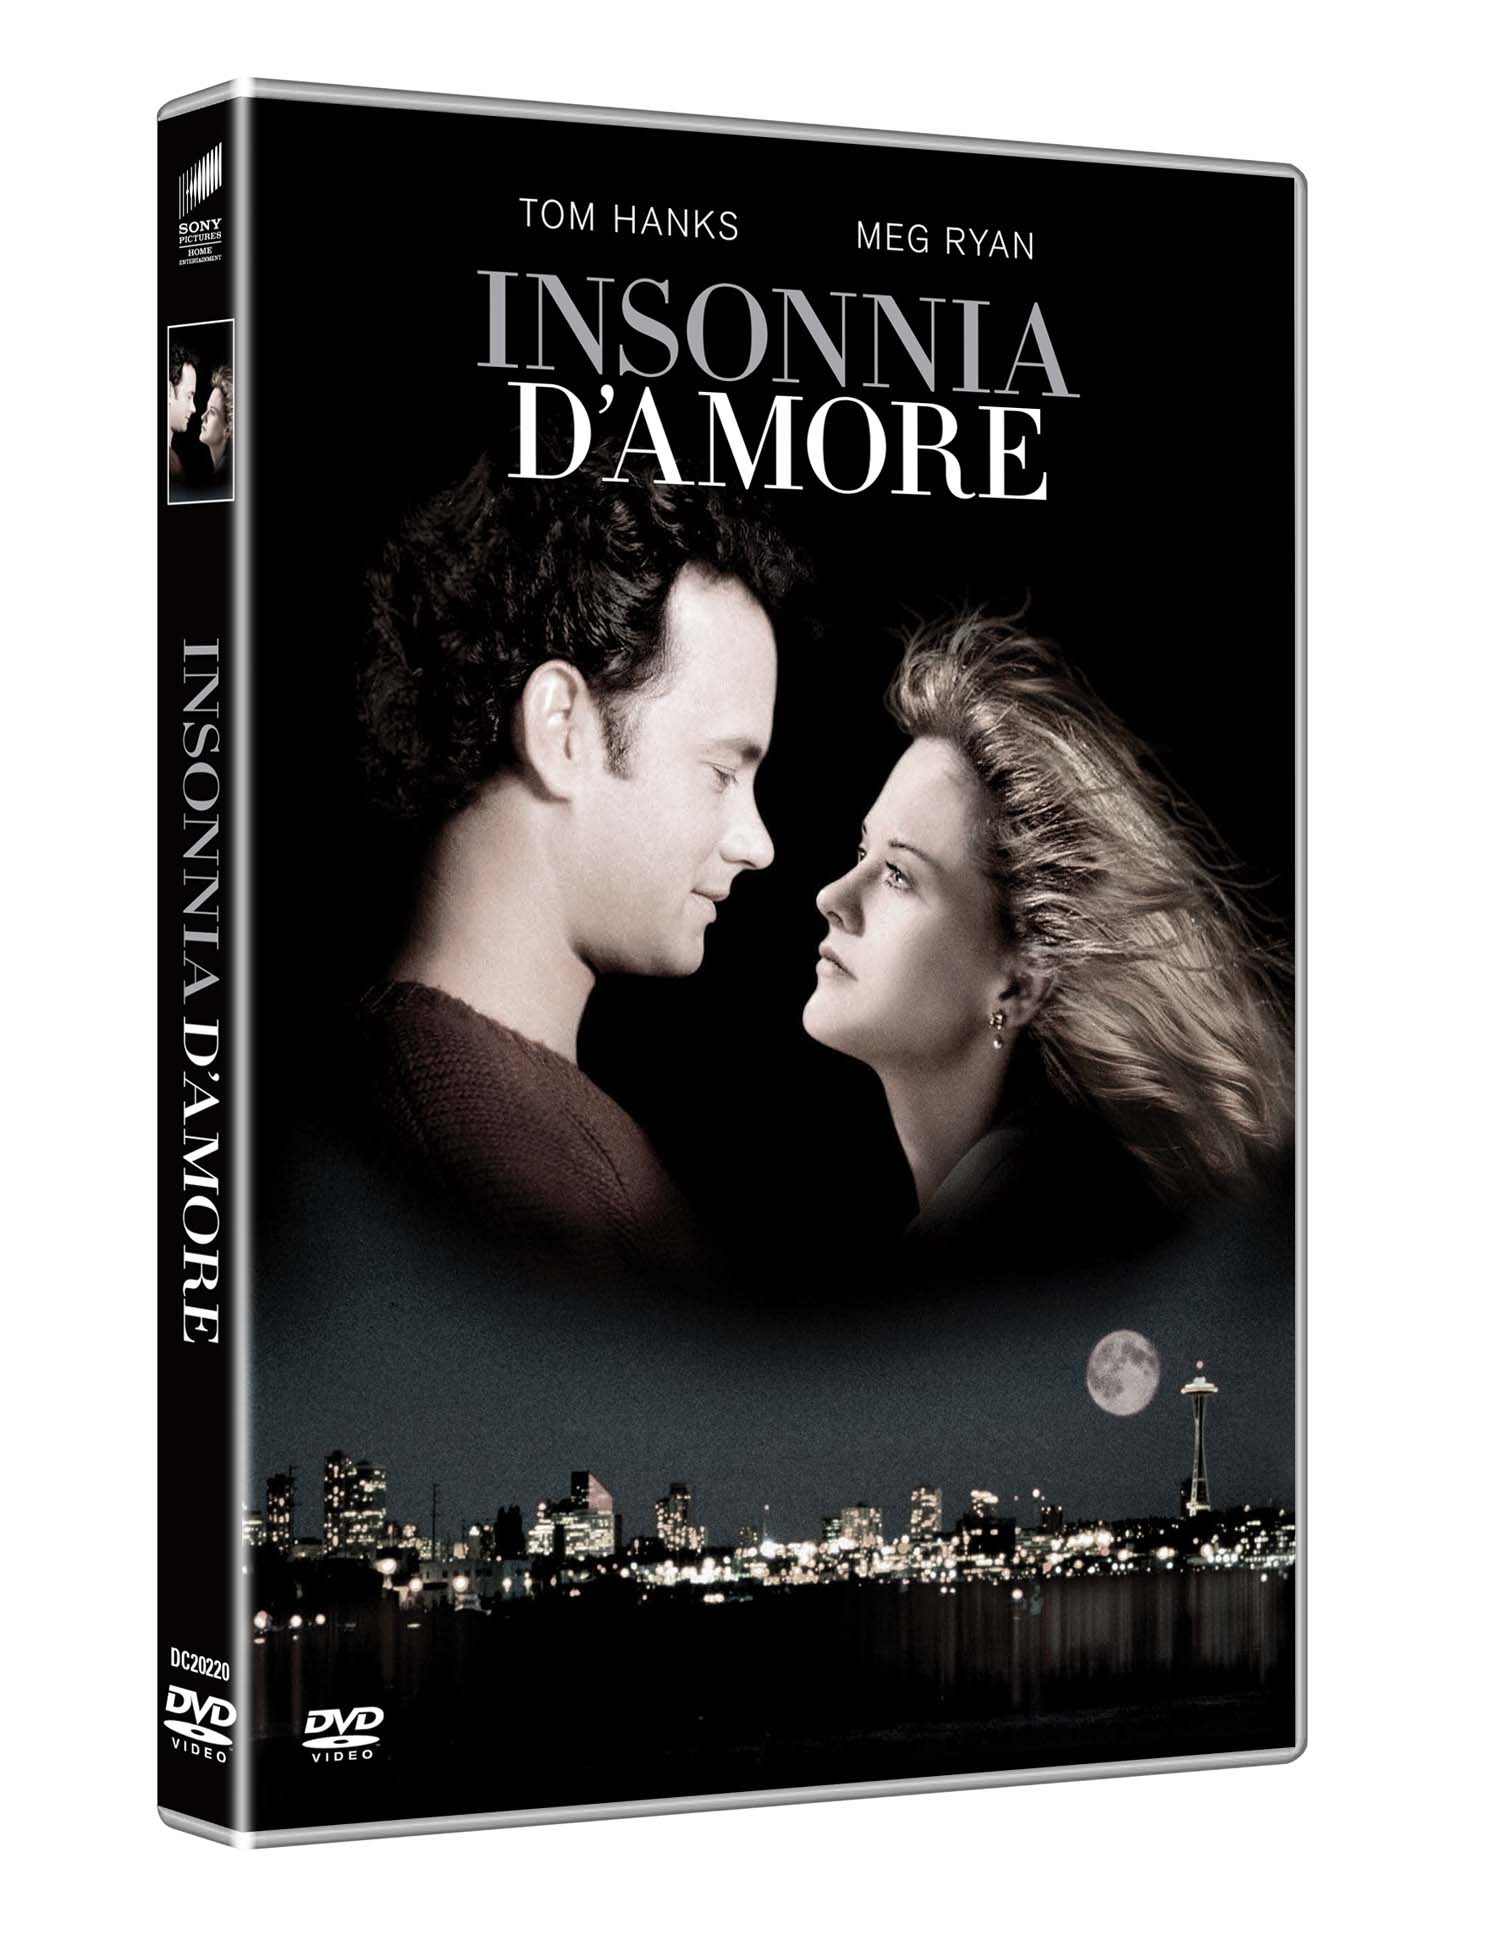 INSONNIA D'AMORE (SAN VALENTINO COLLECTION) (DVD)